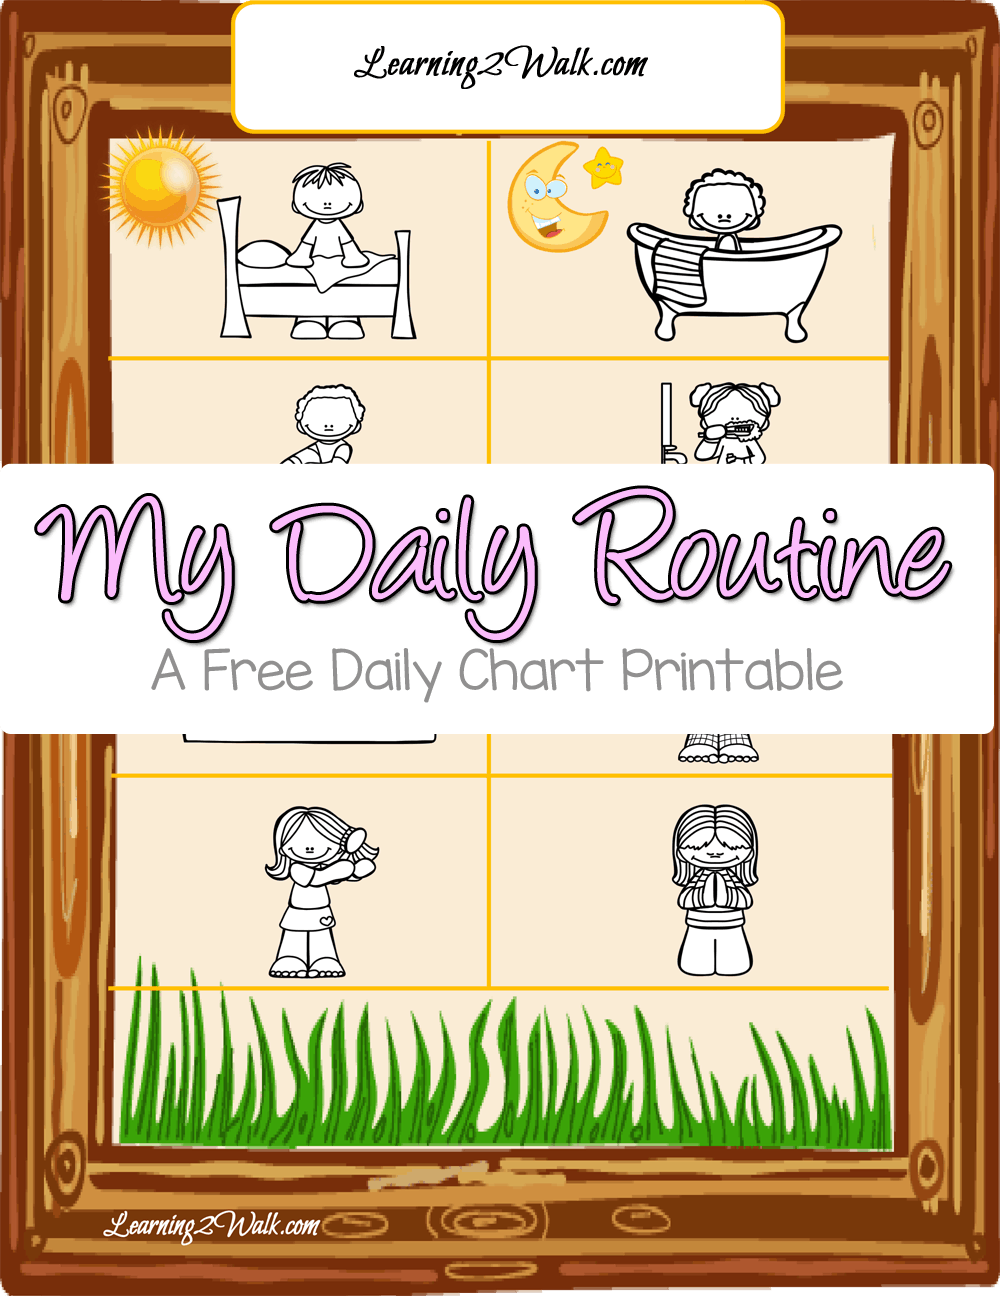 Wondering how to track your child's daily chores? Grab this free Daily routine for kids printable